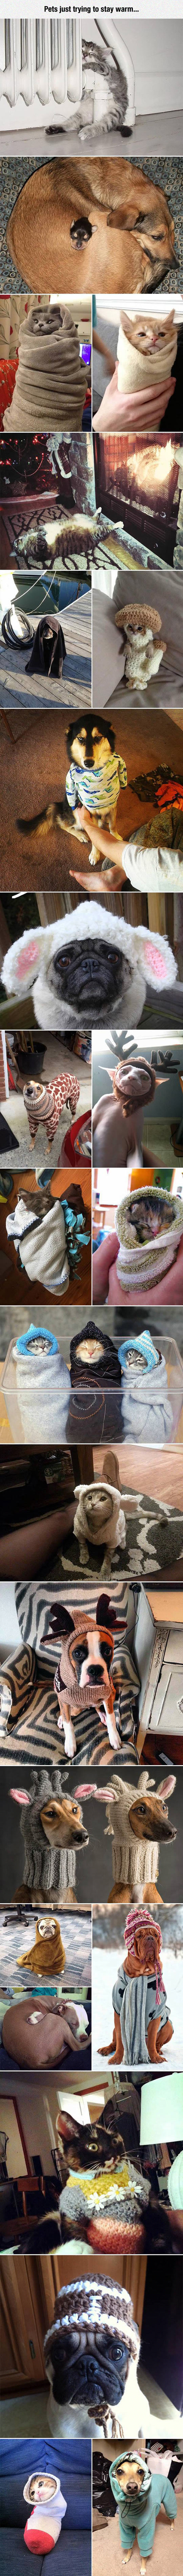 cool-pet-cat-dog-stay-warm